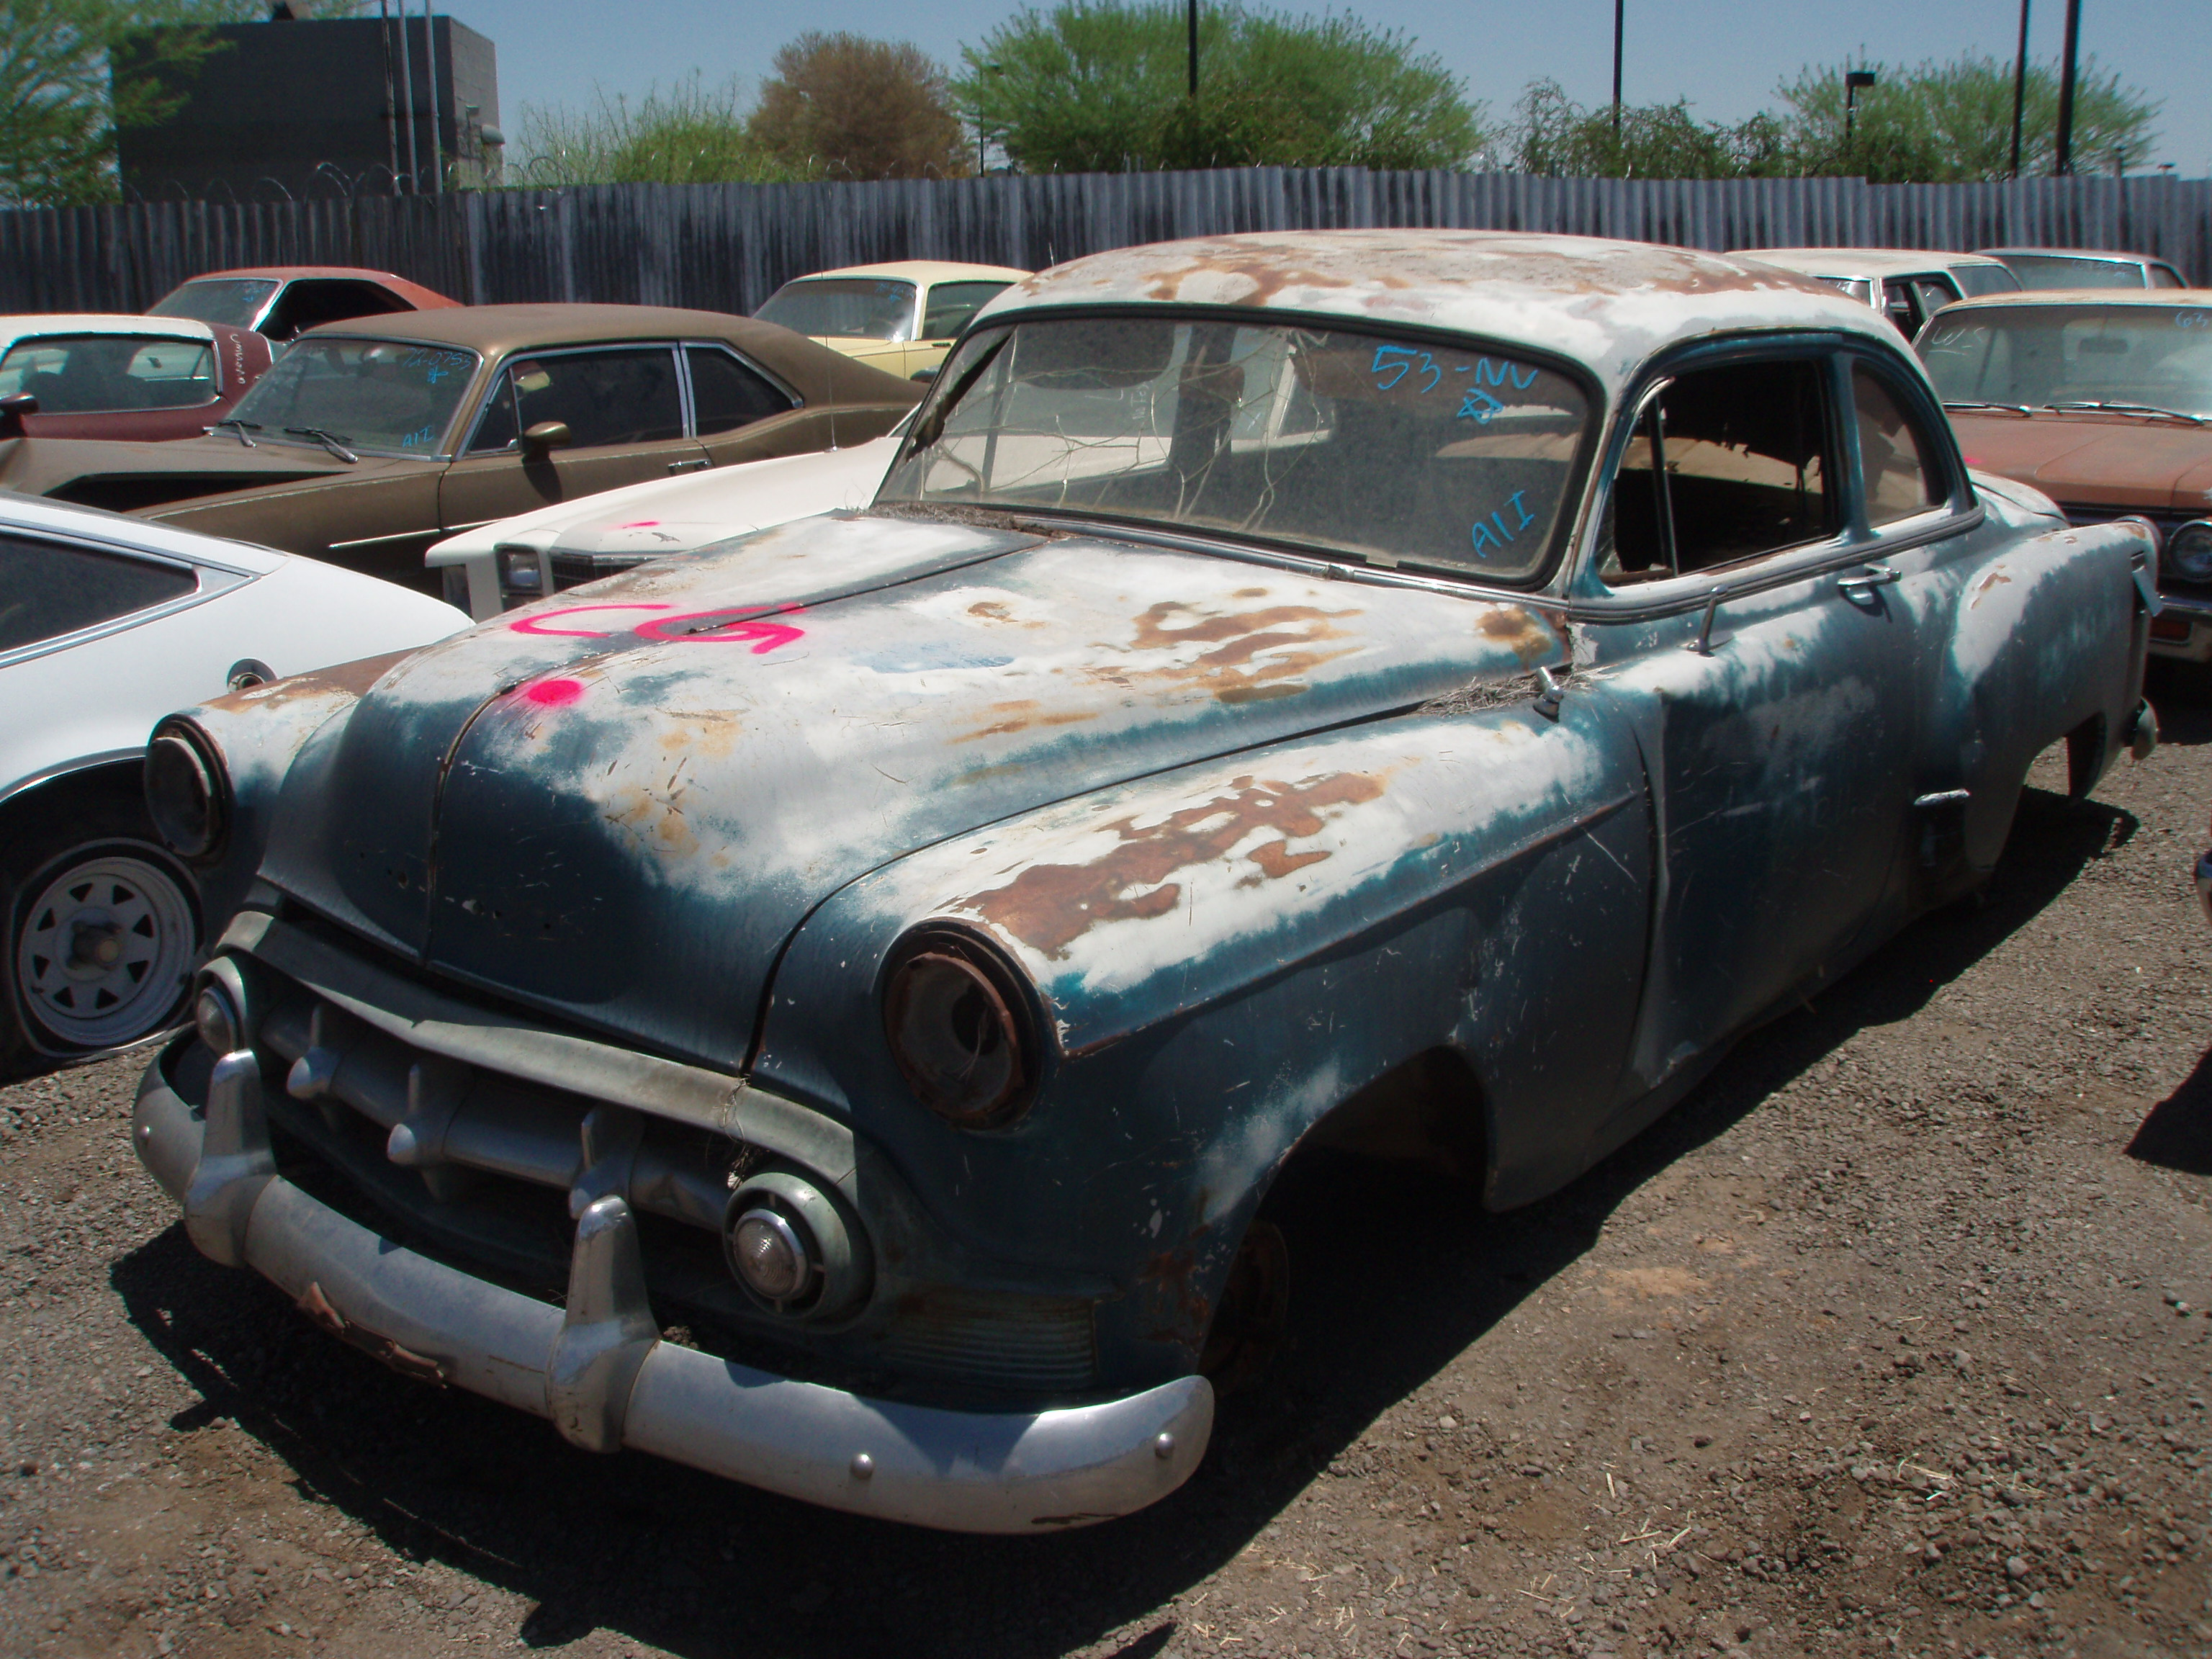 Best Price To Junk Car